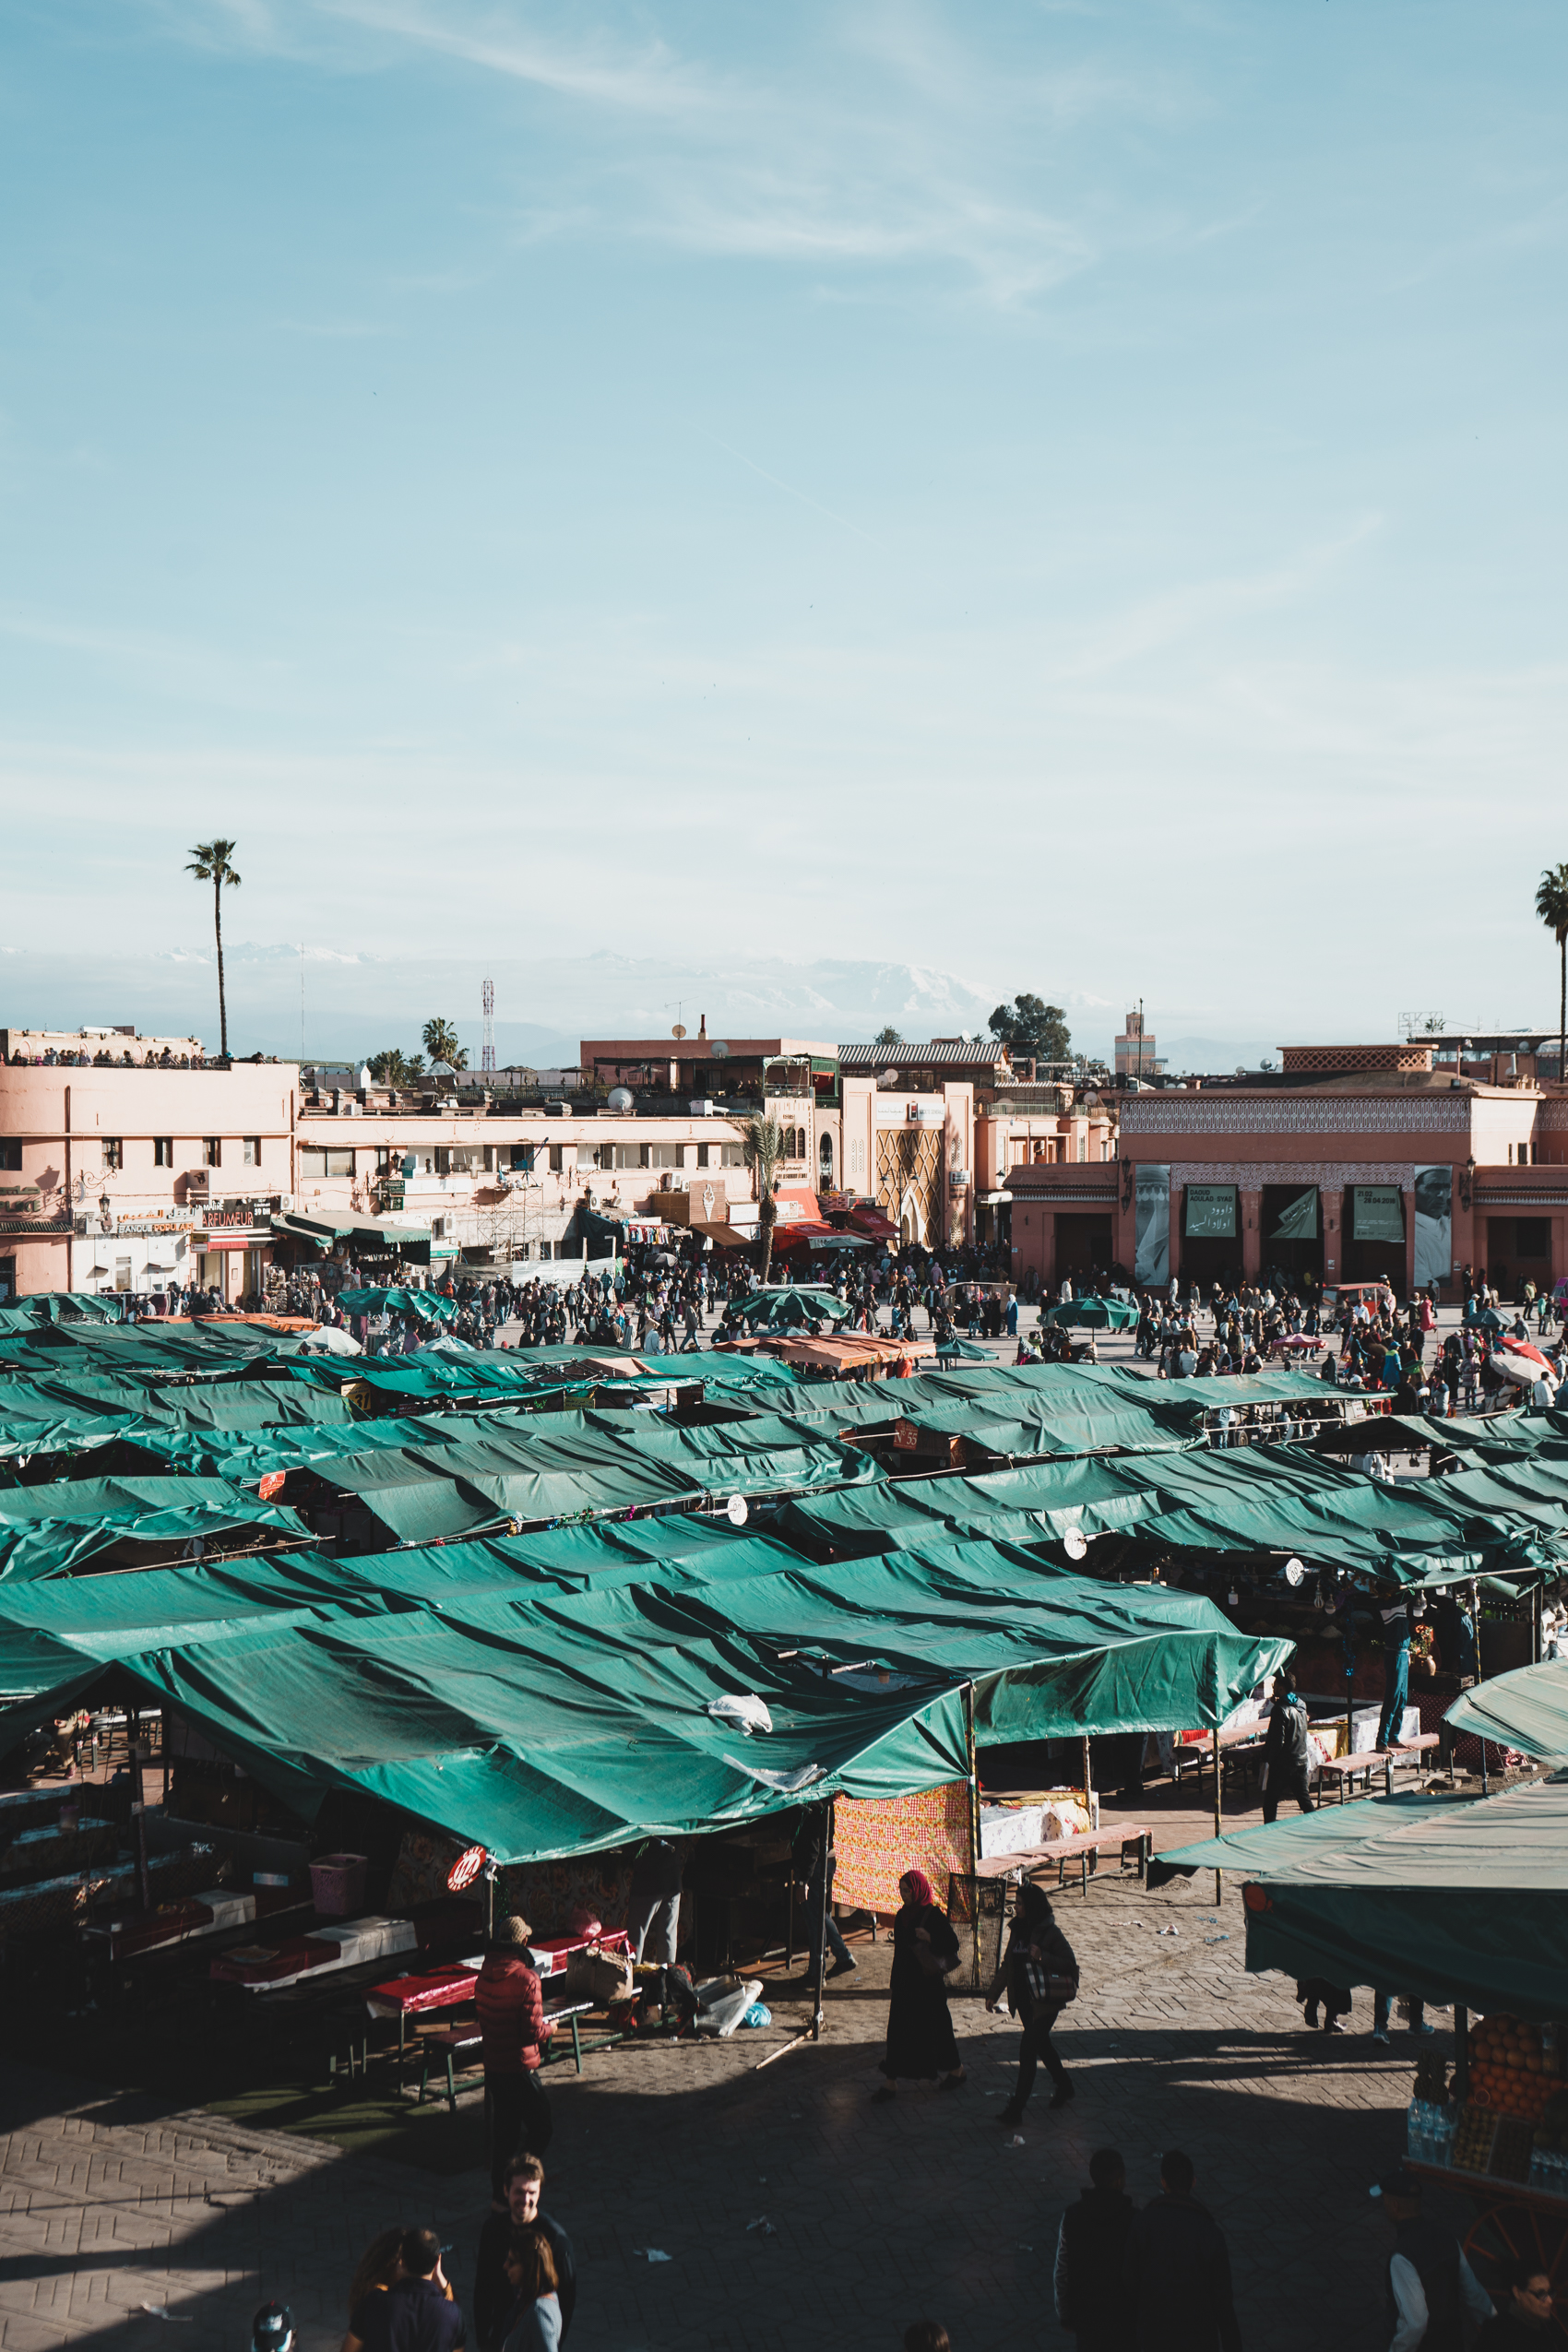 Jemaa el-Fnaa Night Market in Marrakech, Morocco